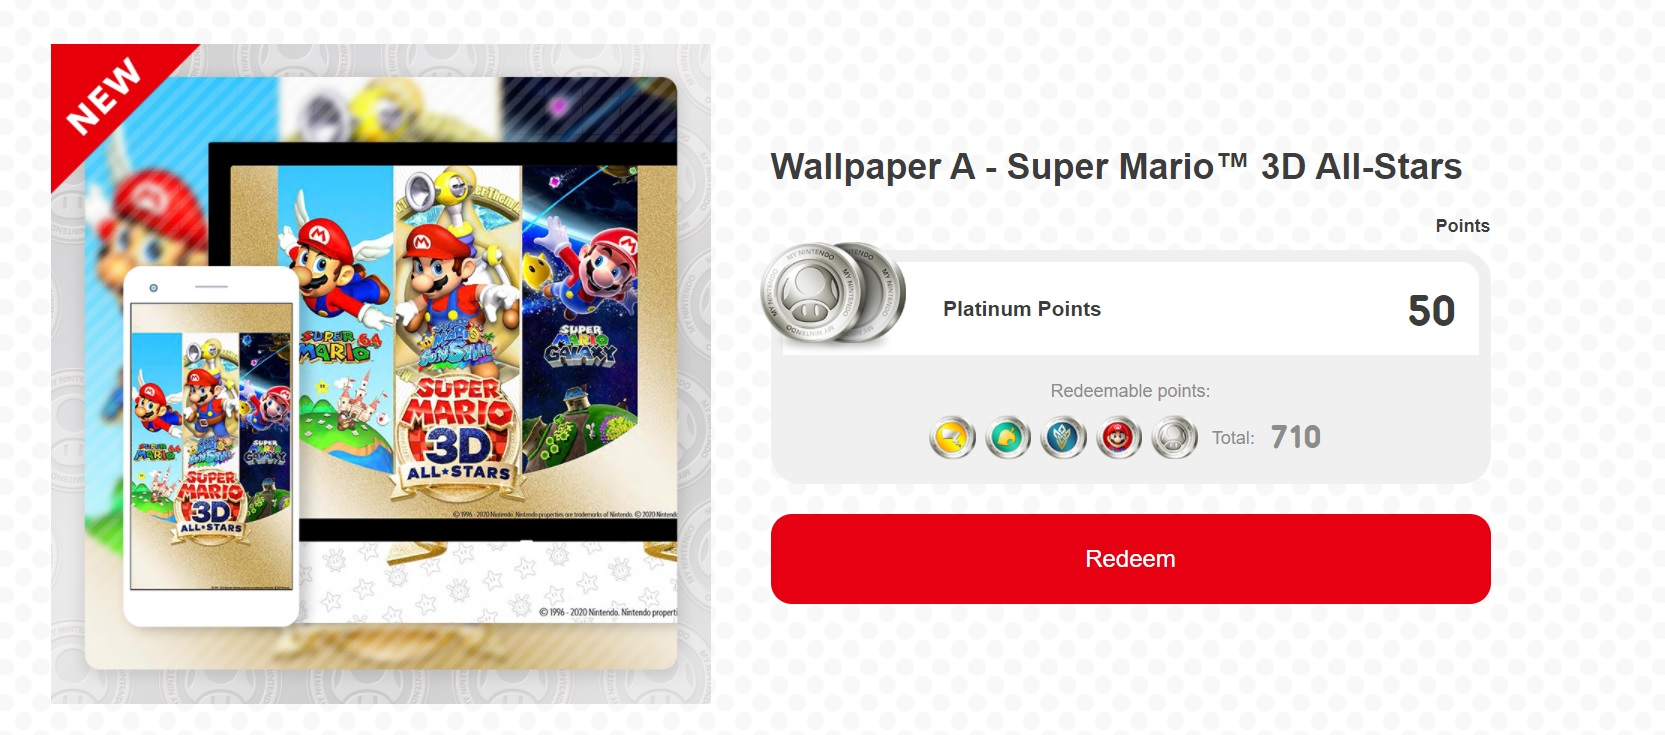 My Nintendo celebrates Super Mario 3D All-Stars with new wallpaper screenshot